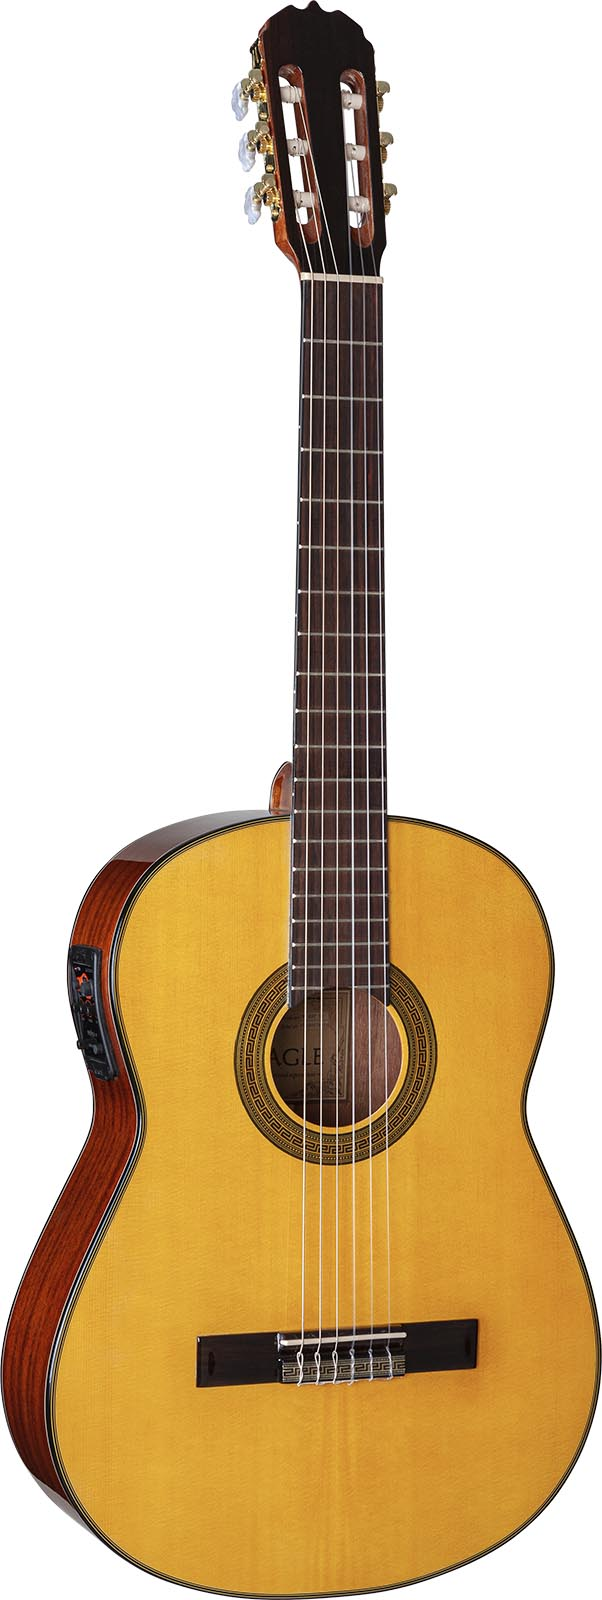 dh69t violao classico eagle pro series dh69t nt natural visao frontal mobile